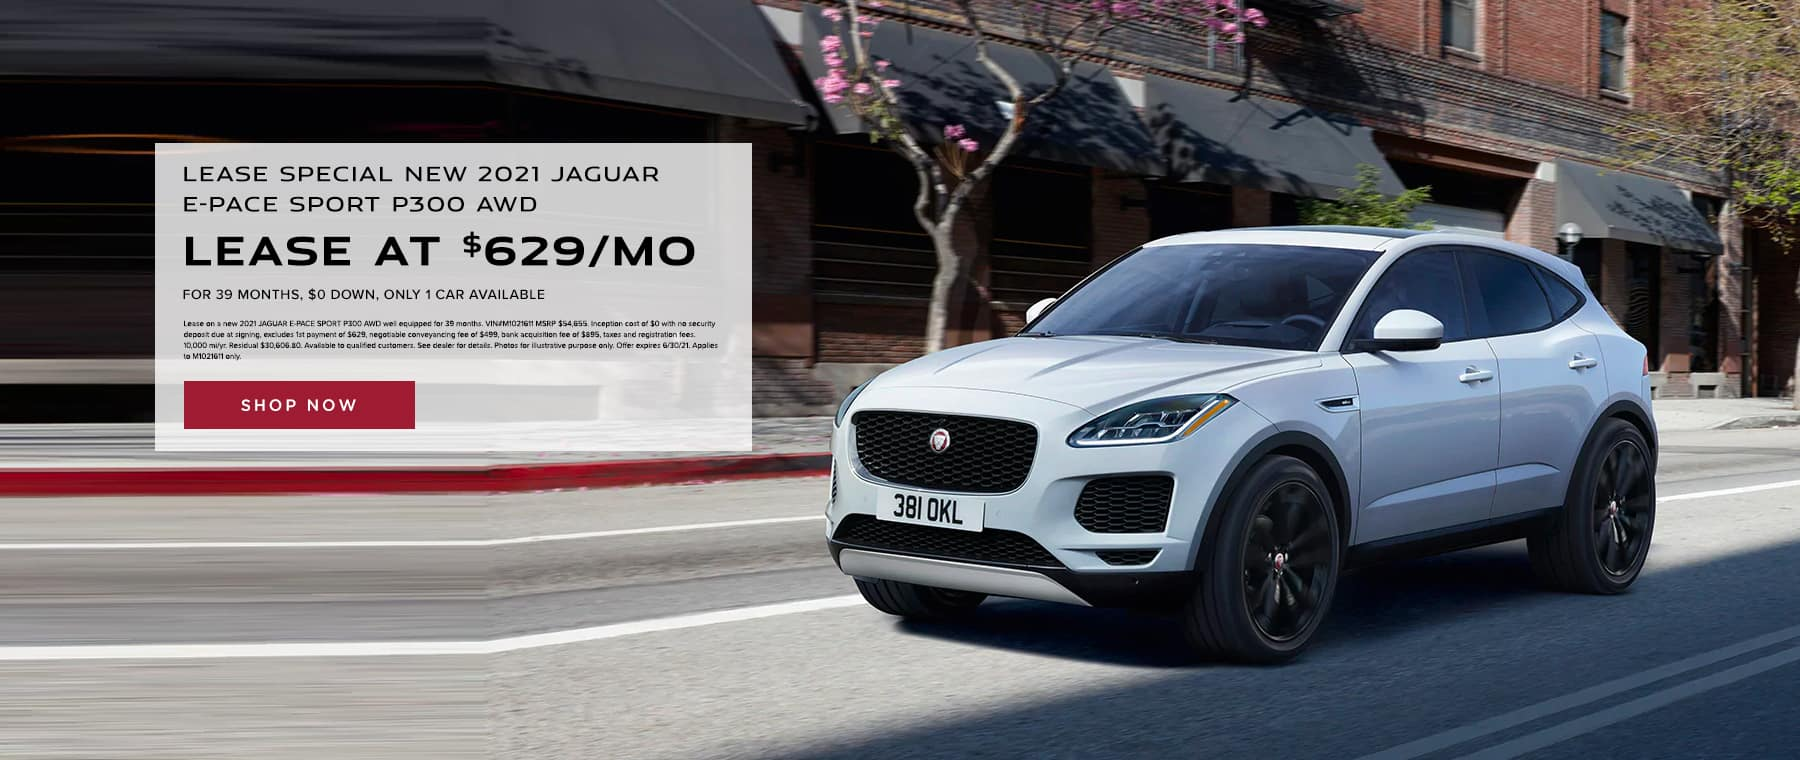 LEASE SPECIAL NEW 2021 JAGUAR E-PACE SPORT P300 AWD – only 1 car available LEASE AT $629 PER MONTH FOR 39 MONTHS